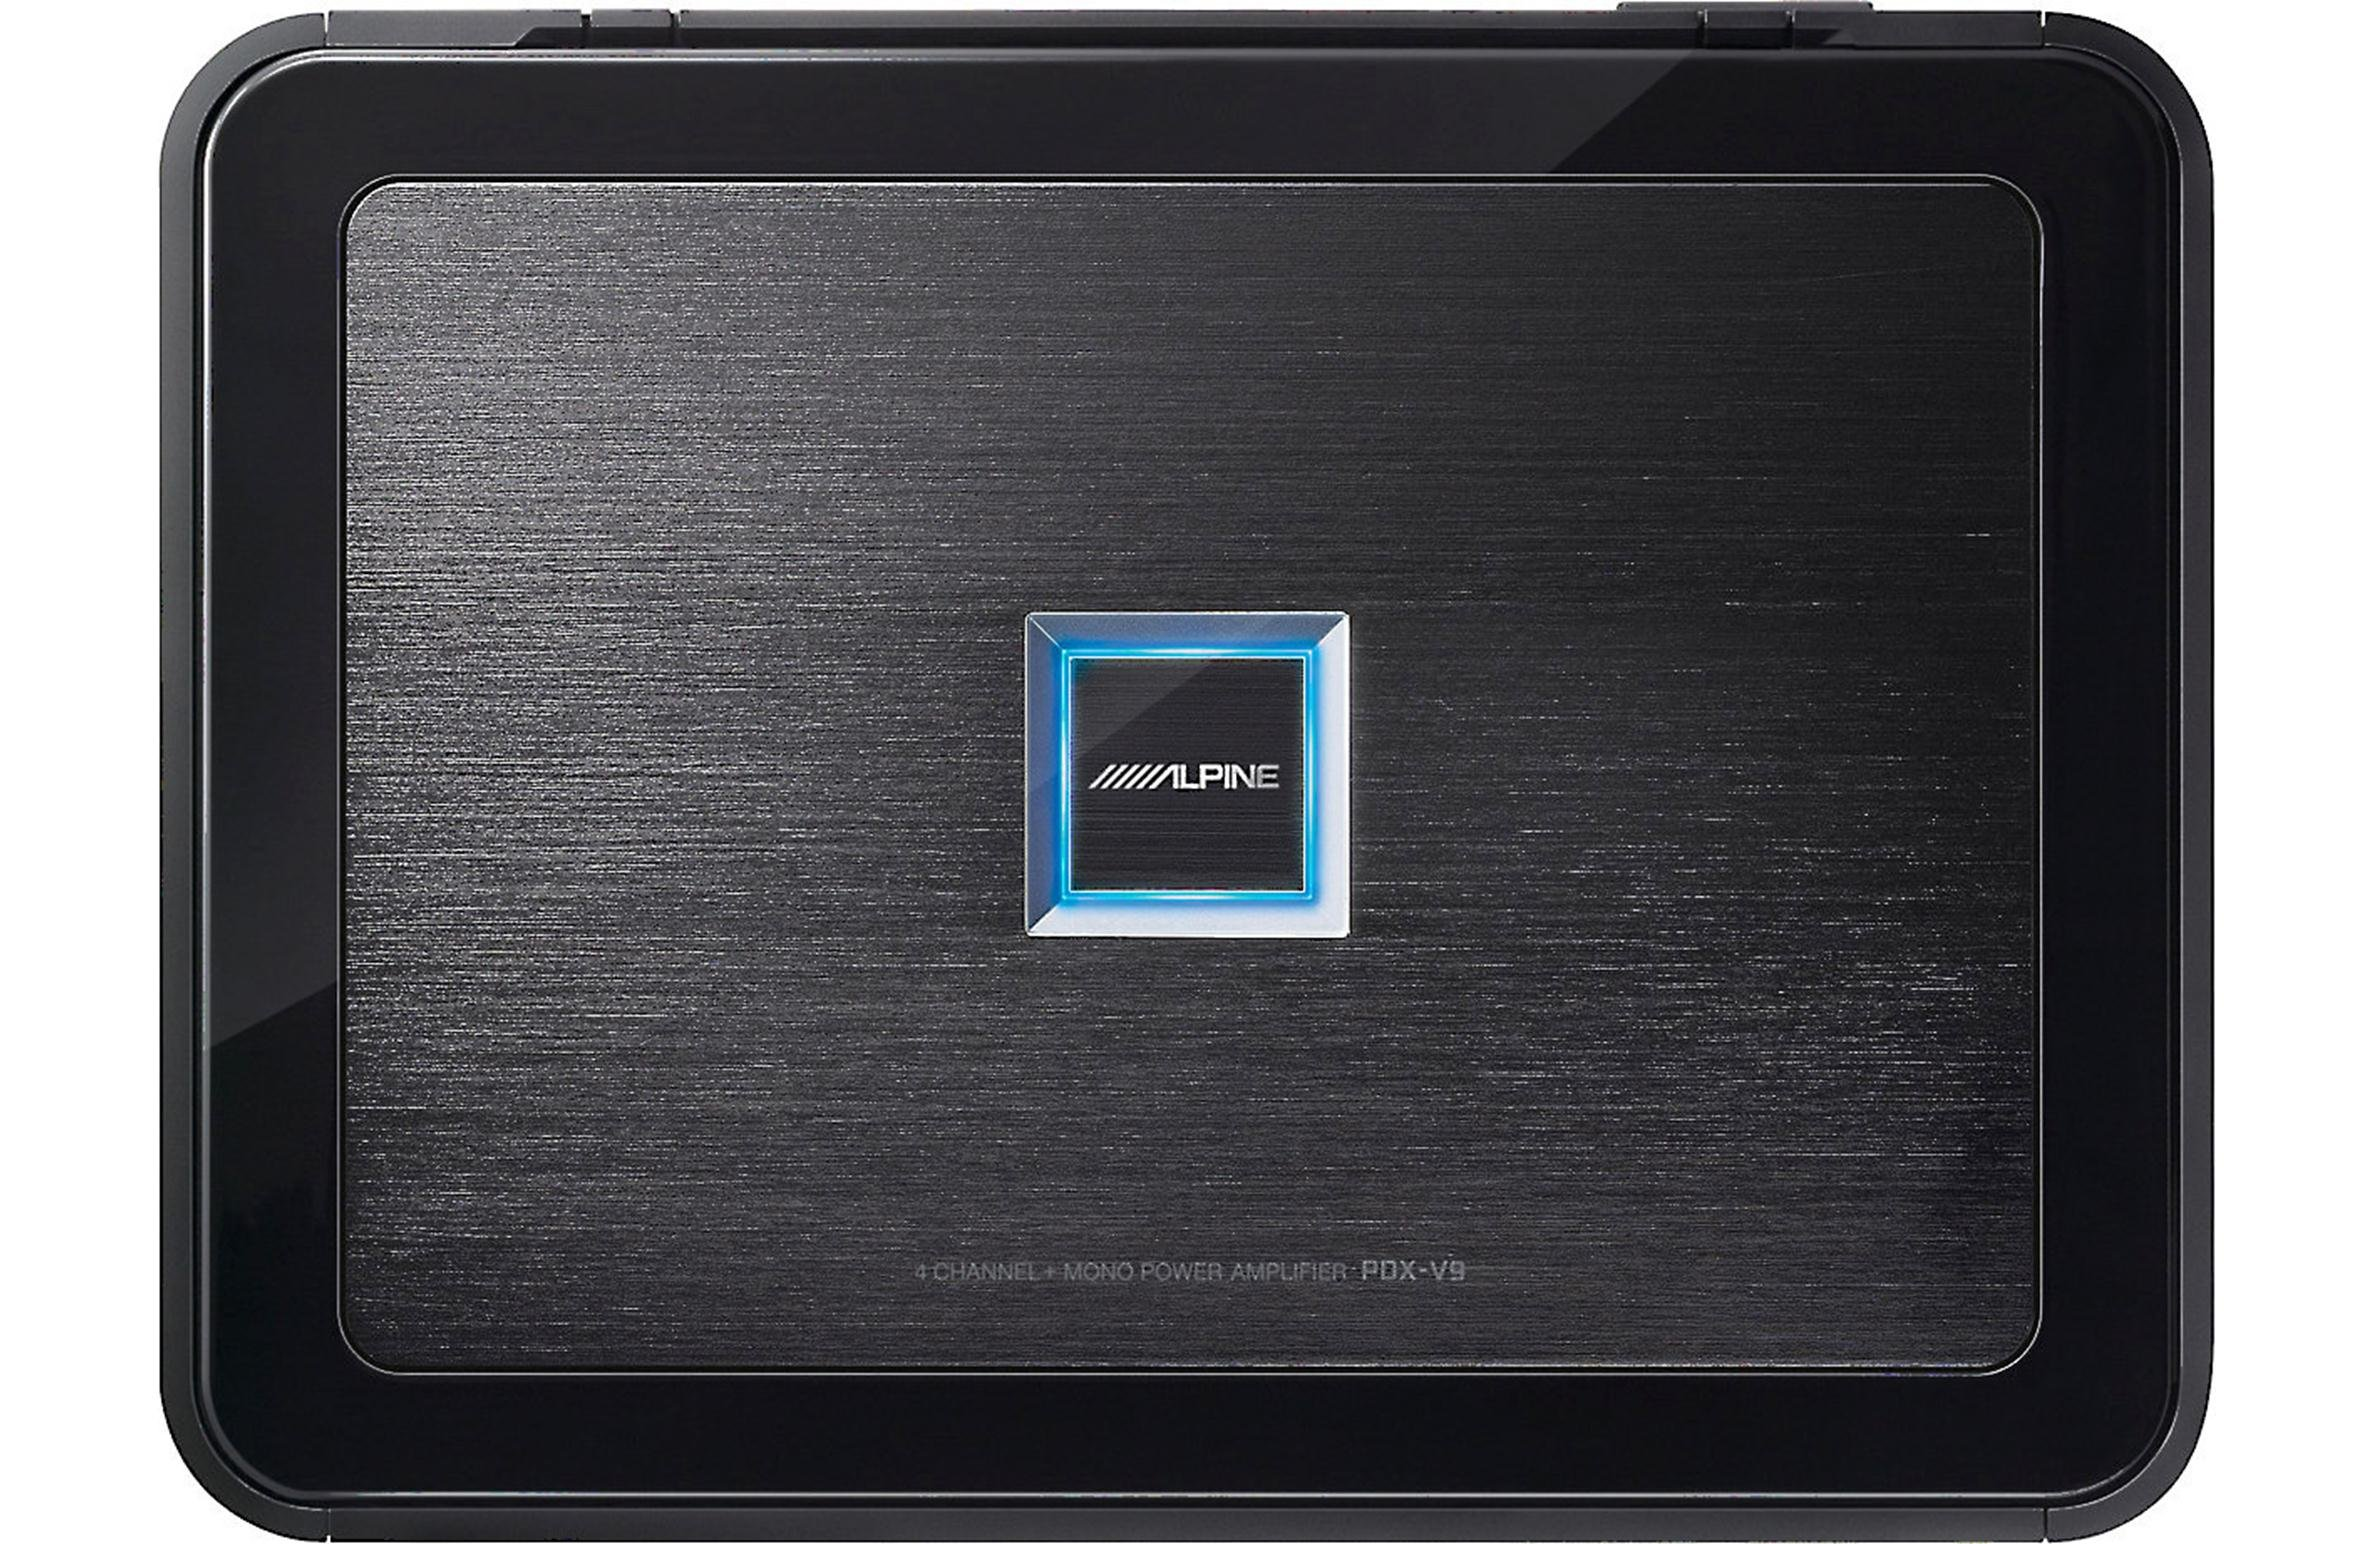 Alpine PDX-V9, 5-Channel Extreme Power Density Digital Amplifier